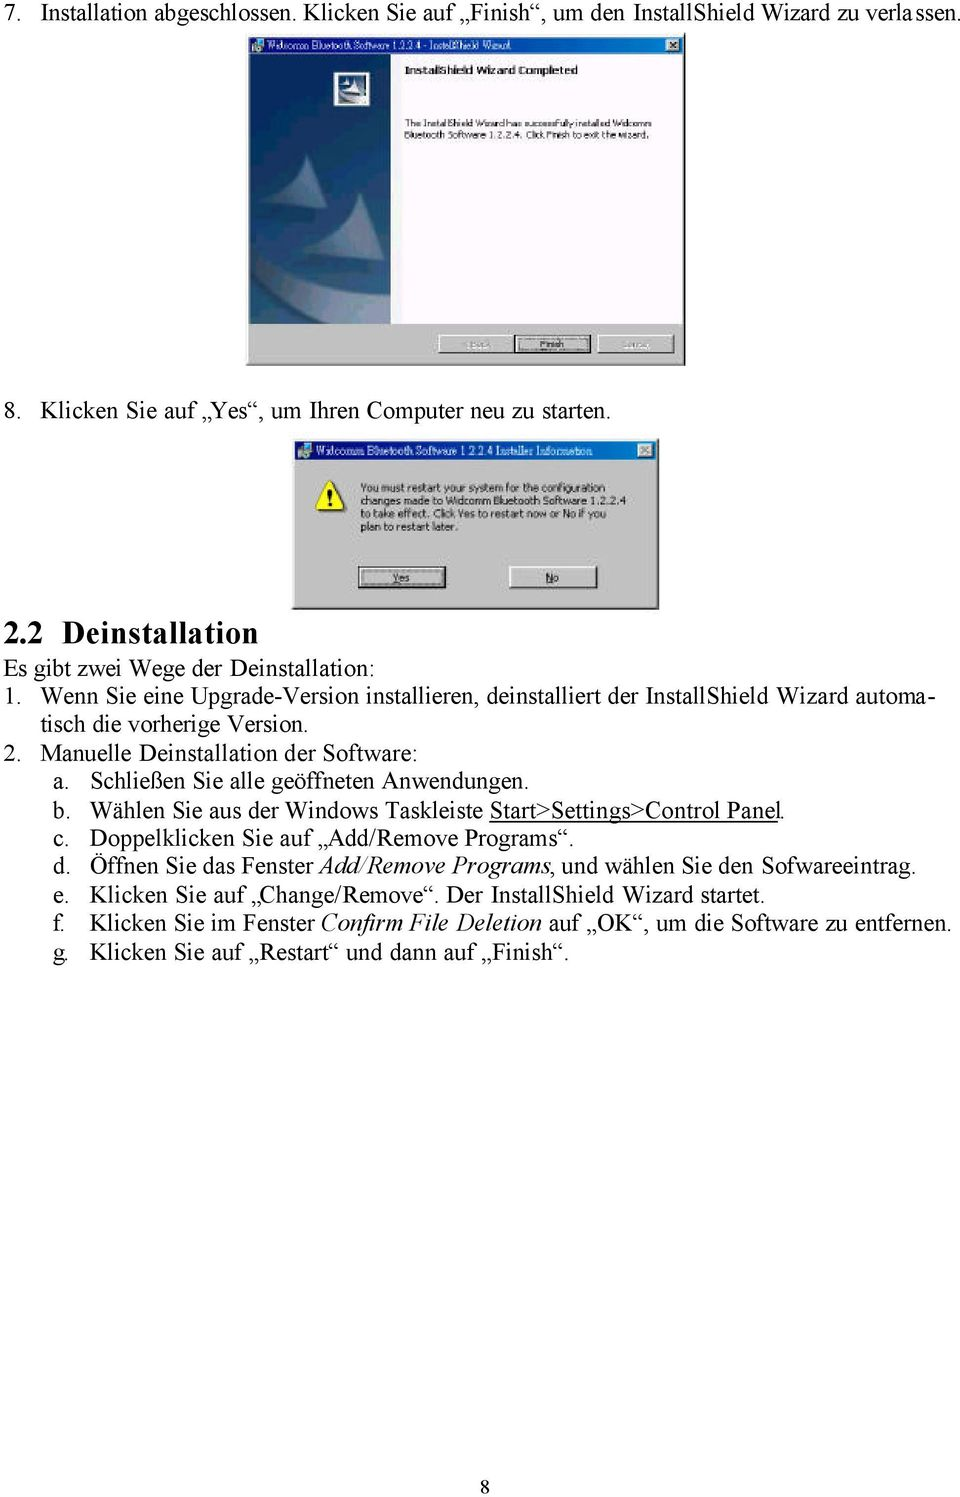 Manuelle Deinstallation der Software: a. Schließen Sie alle geöffneten Anwendungen. b. Wählen Sie aus der Windows Taskleiste Start>Settings>Control Panel. c. Doppelklicken Sie auf Add/Remove Programs.